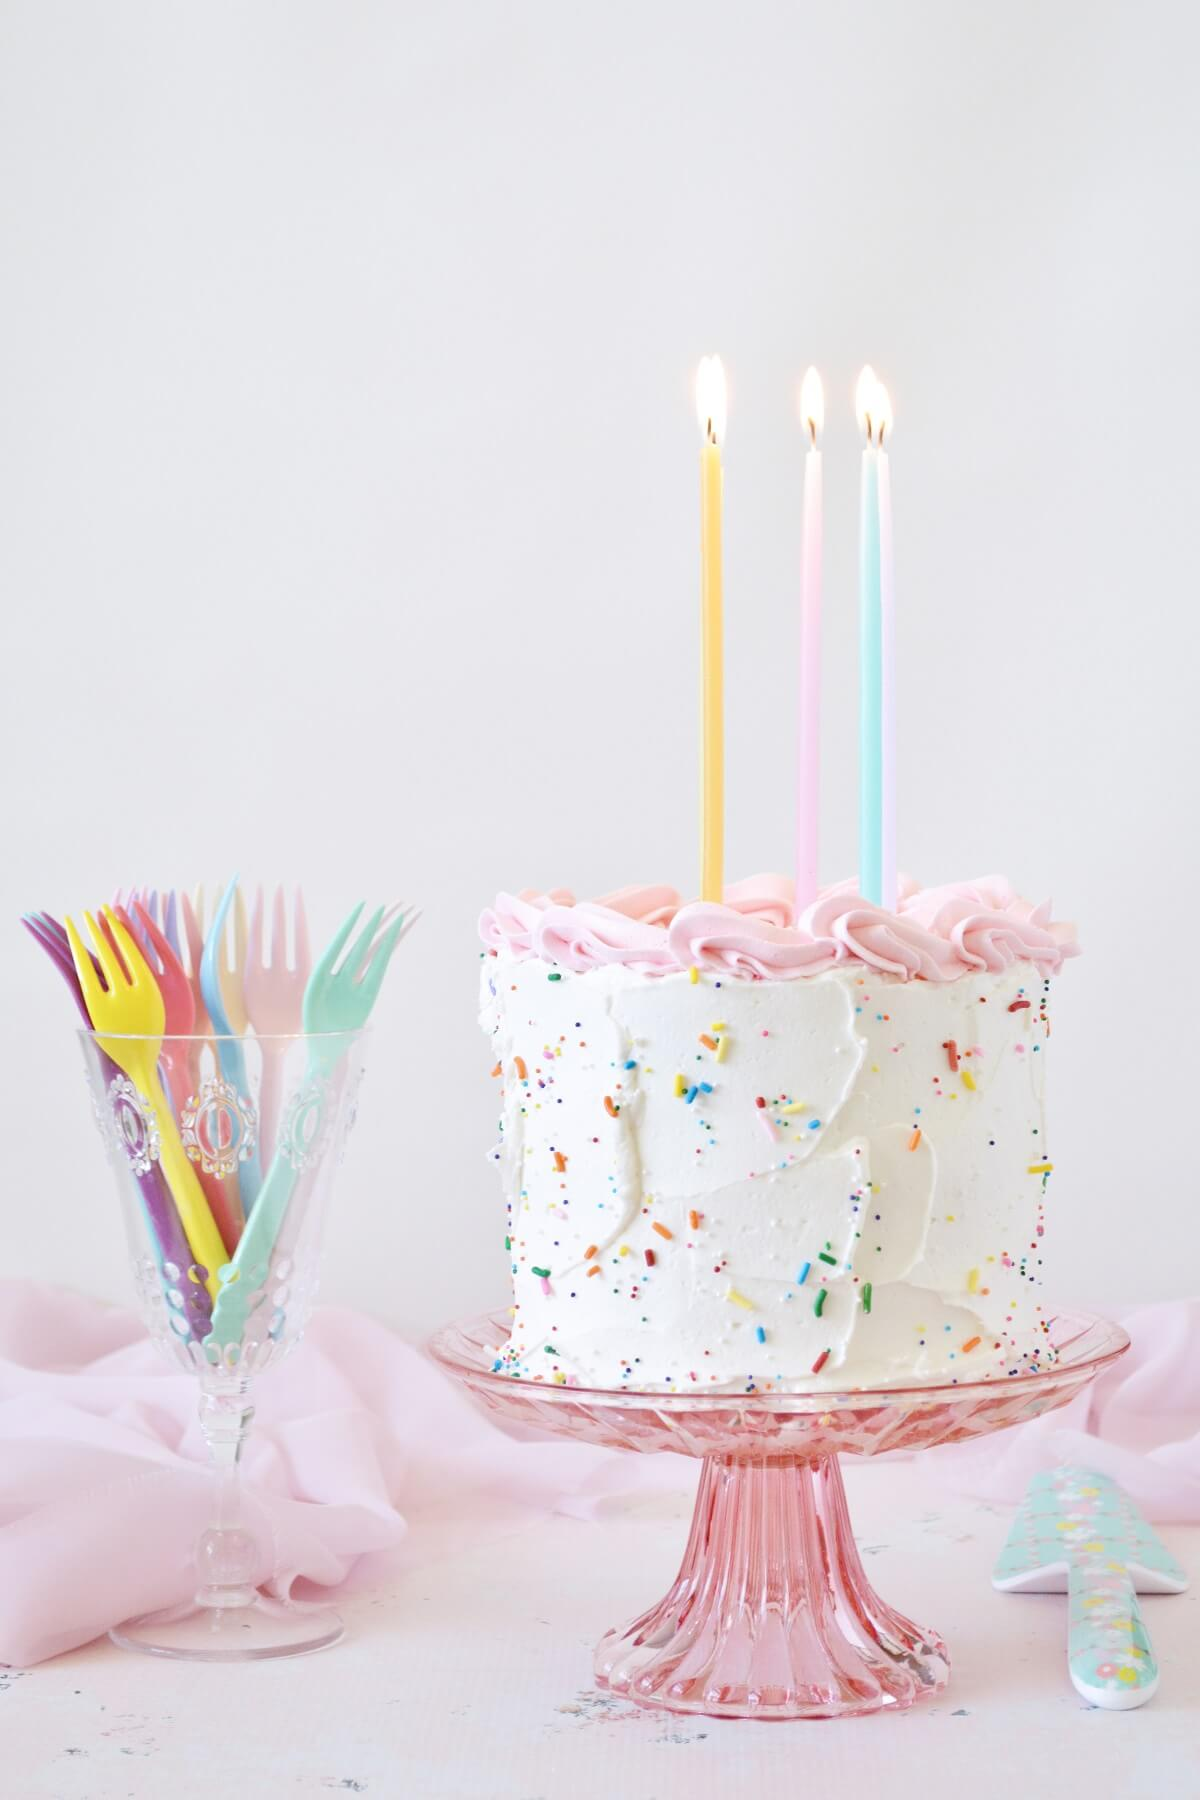 A birthday cake with sprinkles and candles.